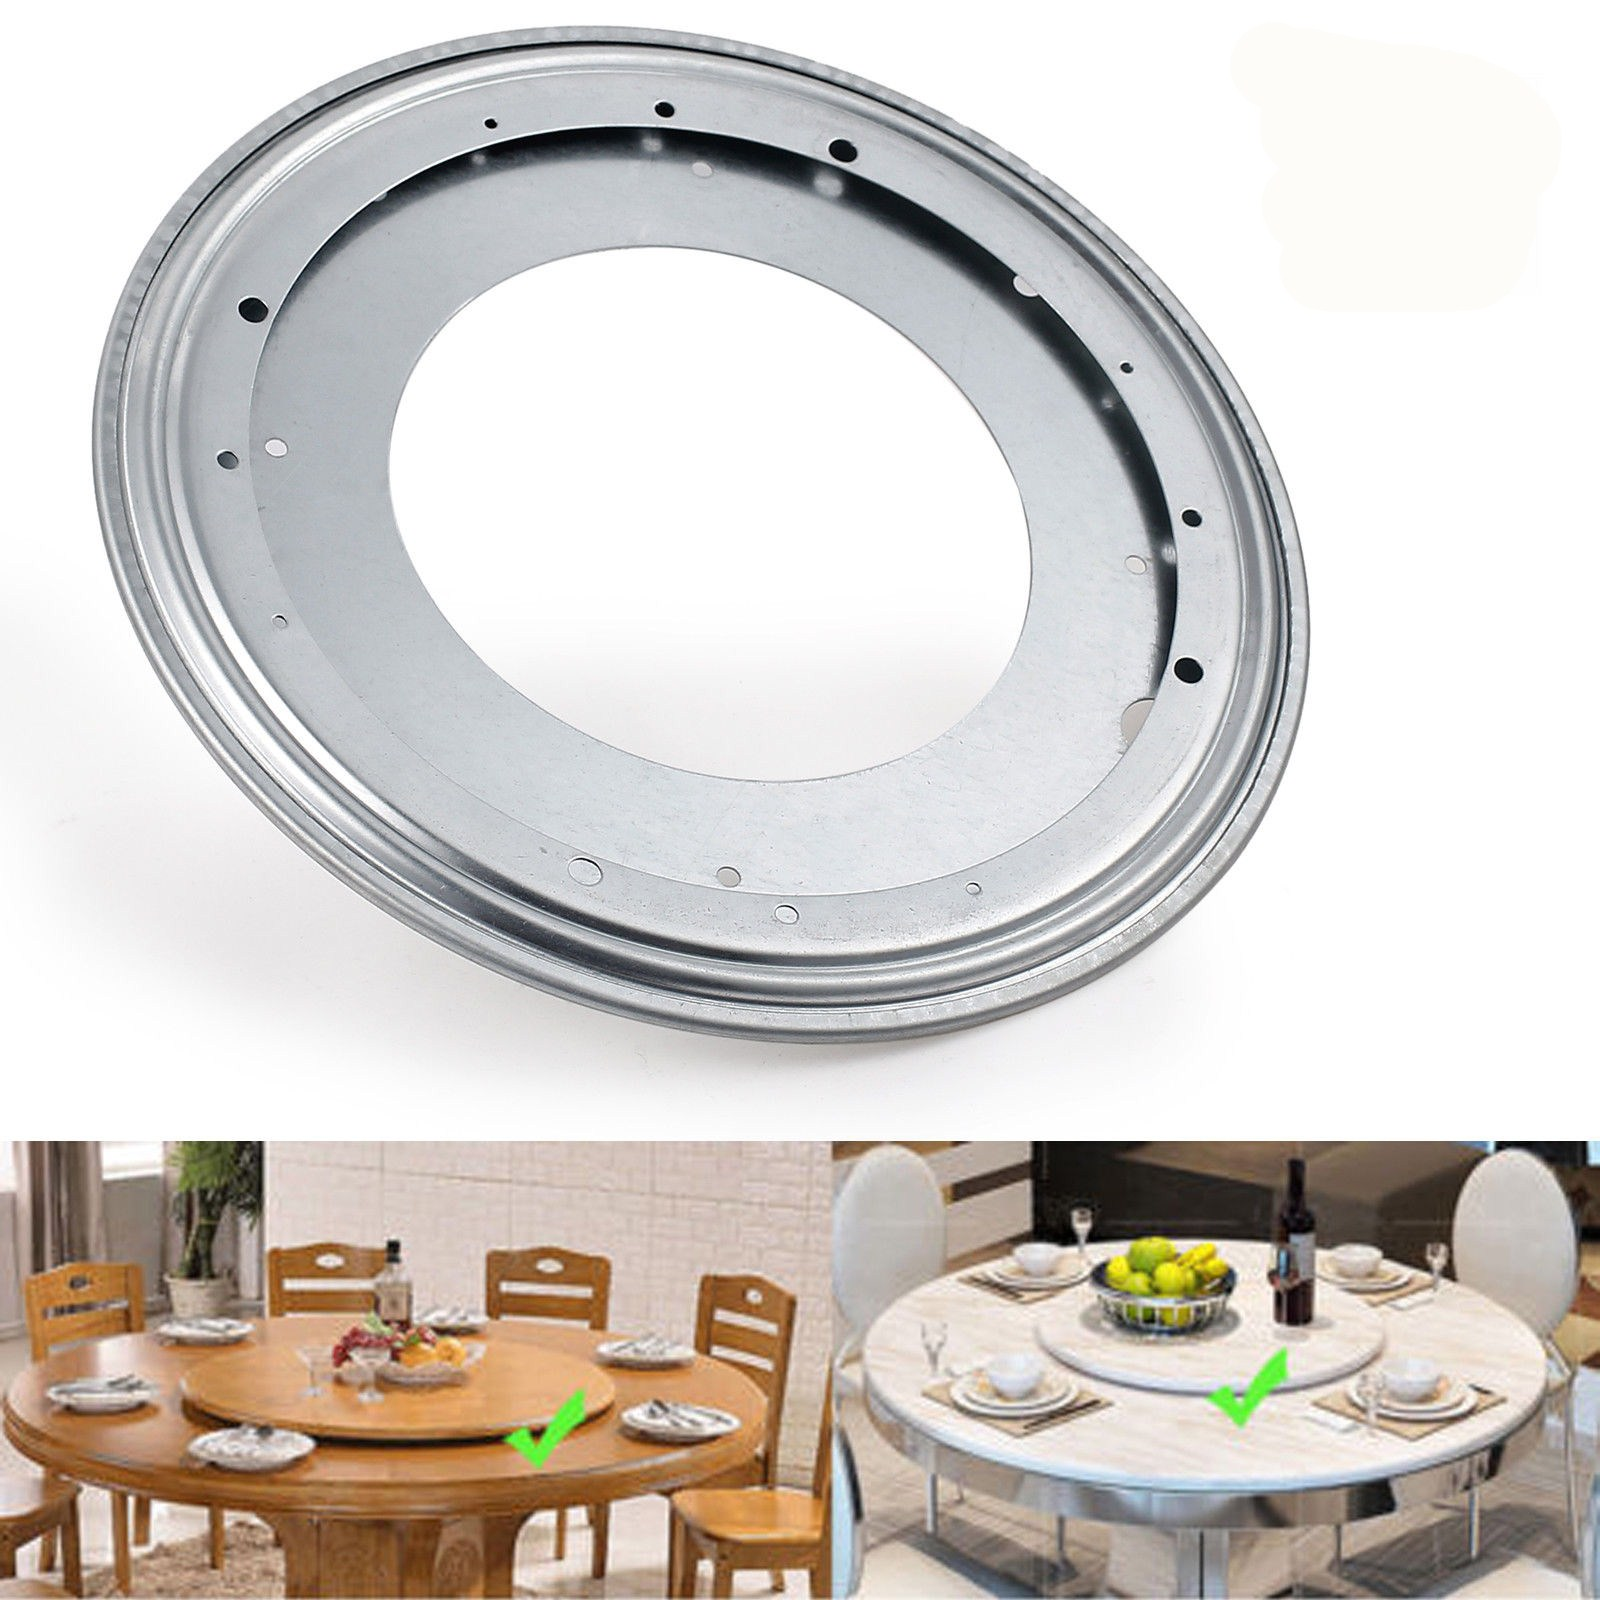 12 Inch Heavy Duty Lazy Susan Bearing Metal Swivel Bearing Swivel Plate Round Turntable Rotating For Table Plate 24in 60cm anti slip universal rotating turn table larizonay lazy susan for round dining table